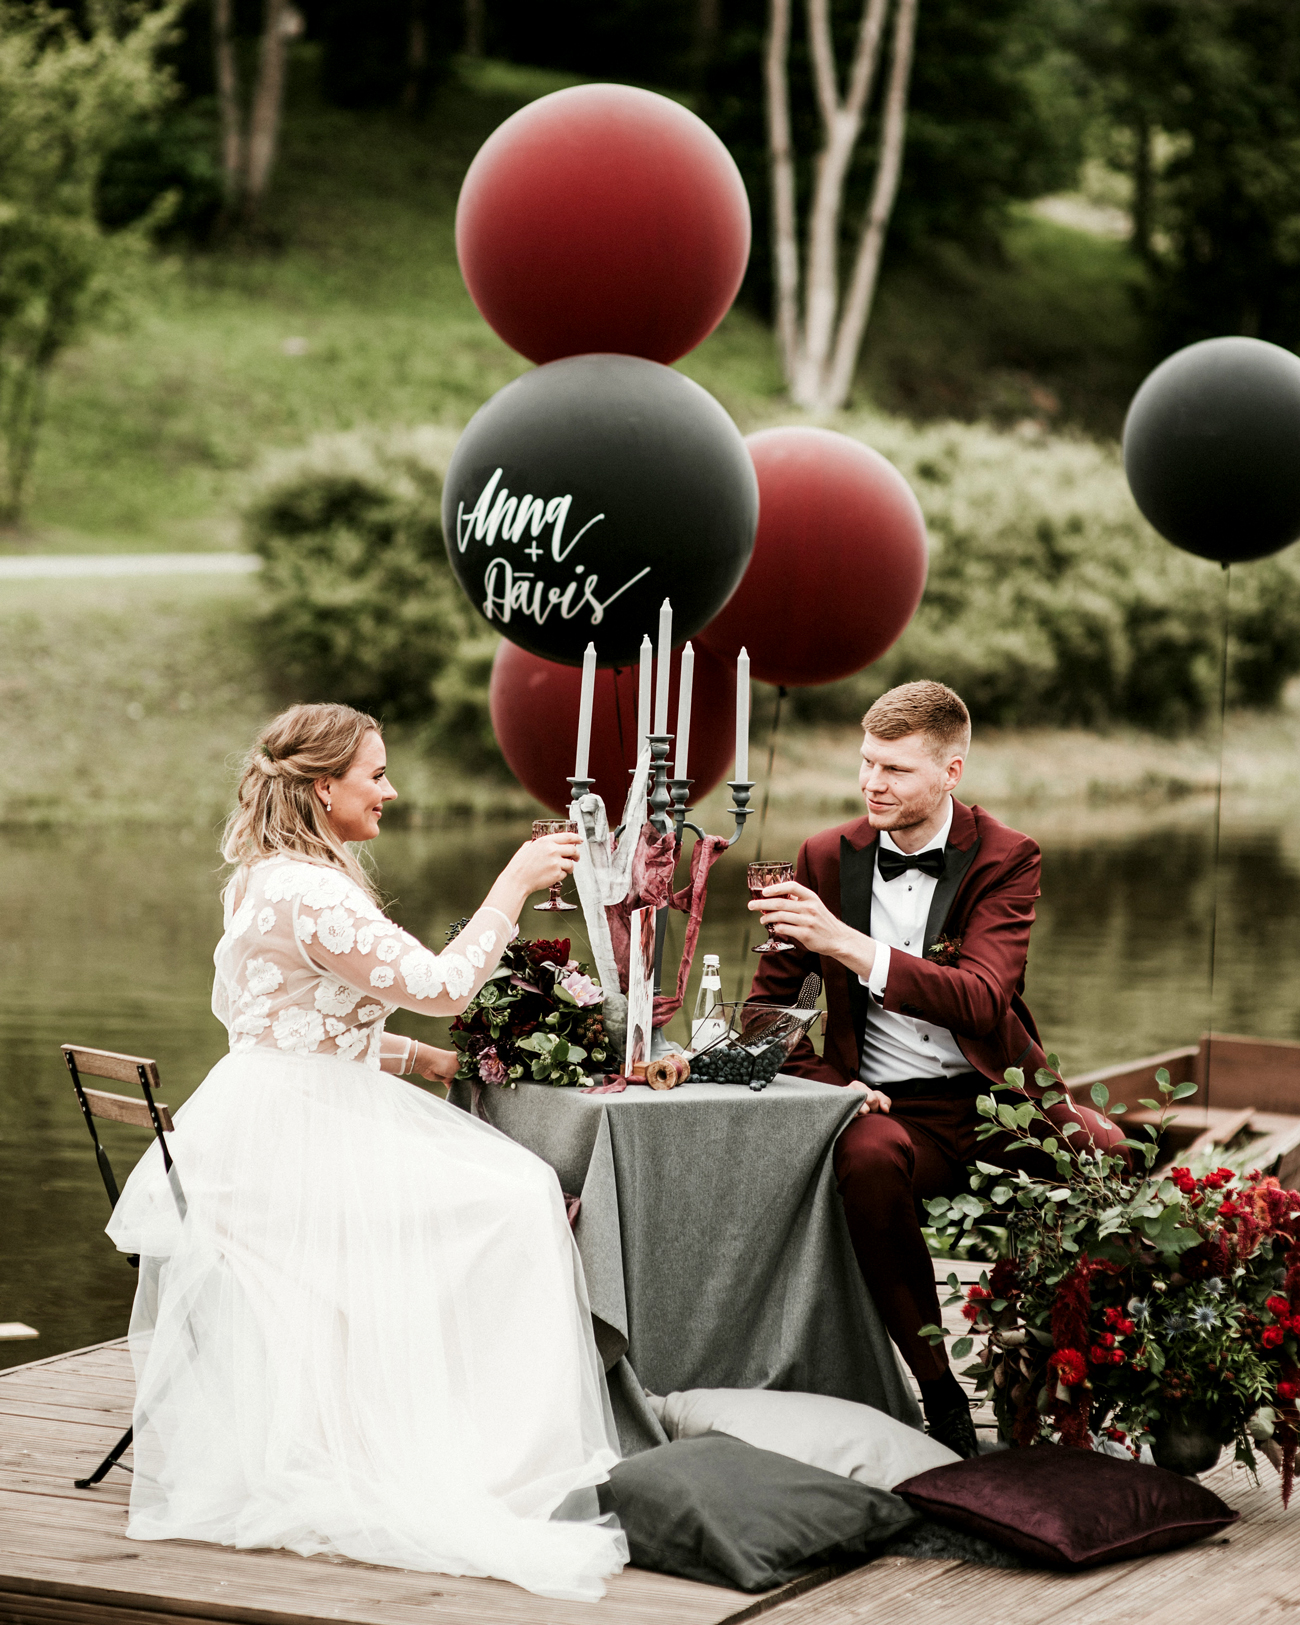 dark red and black wedding balloon decor wedding color scheme